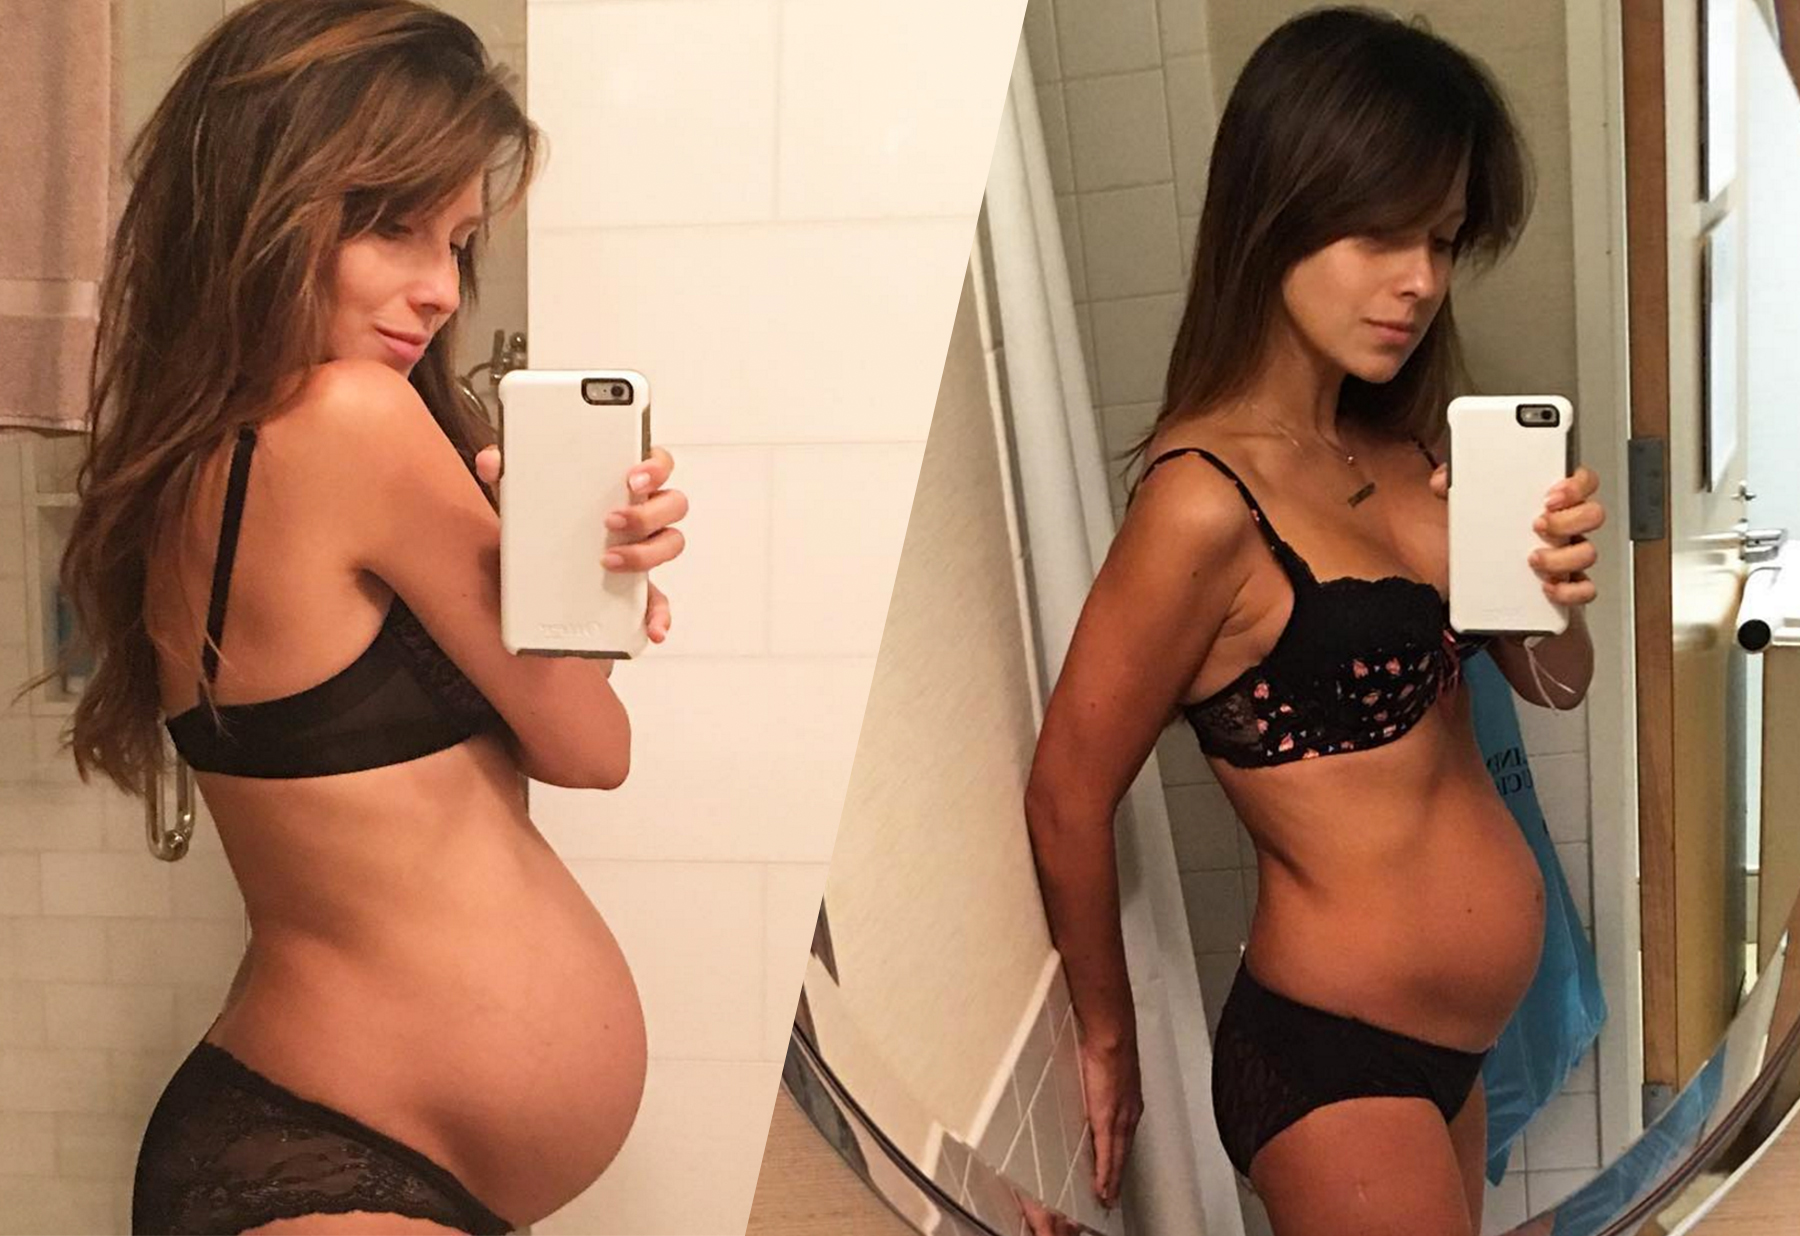 pics Pregnant Abs Model Shares Post-Birth Selfie